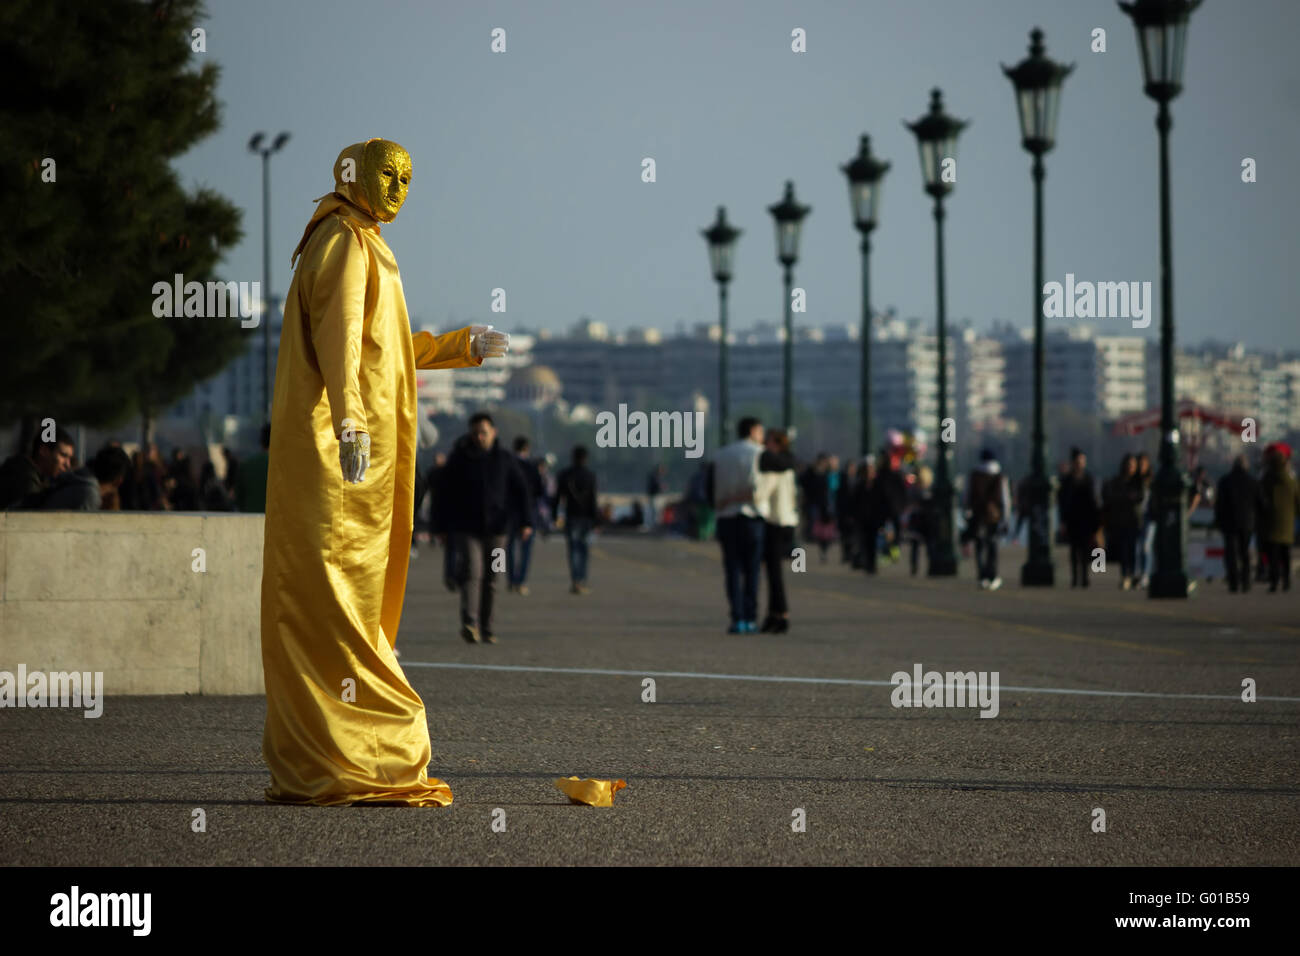 A street mime artist wearing a gold sequin dress performing live on Thessaloniki's waterfront, near White Tower. - Stock Image